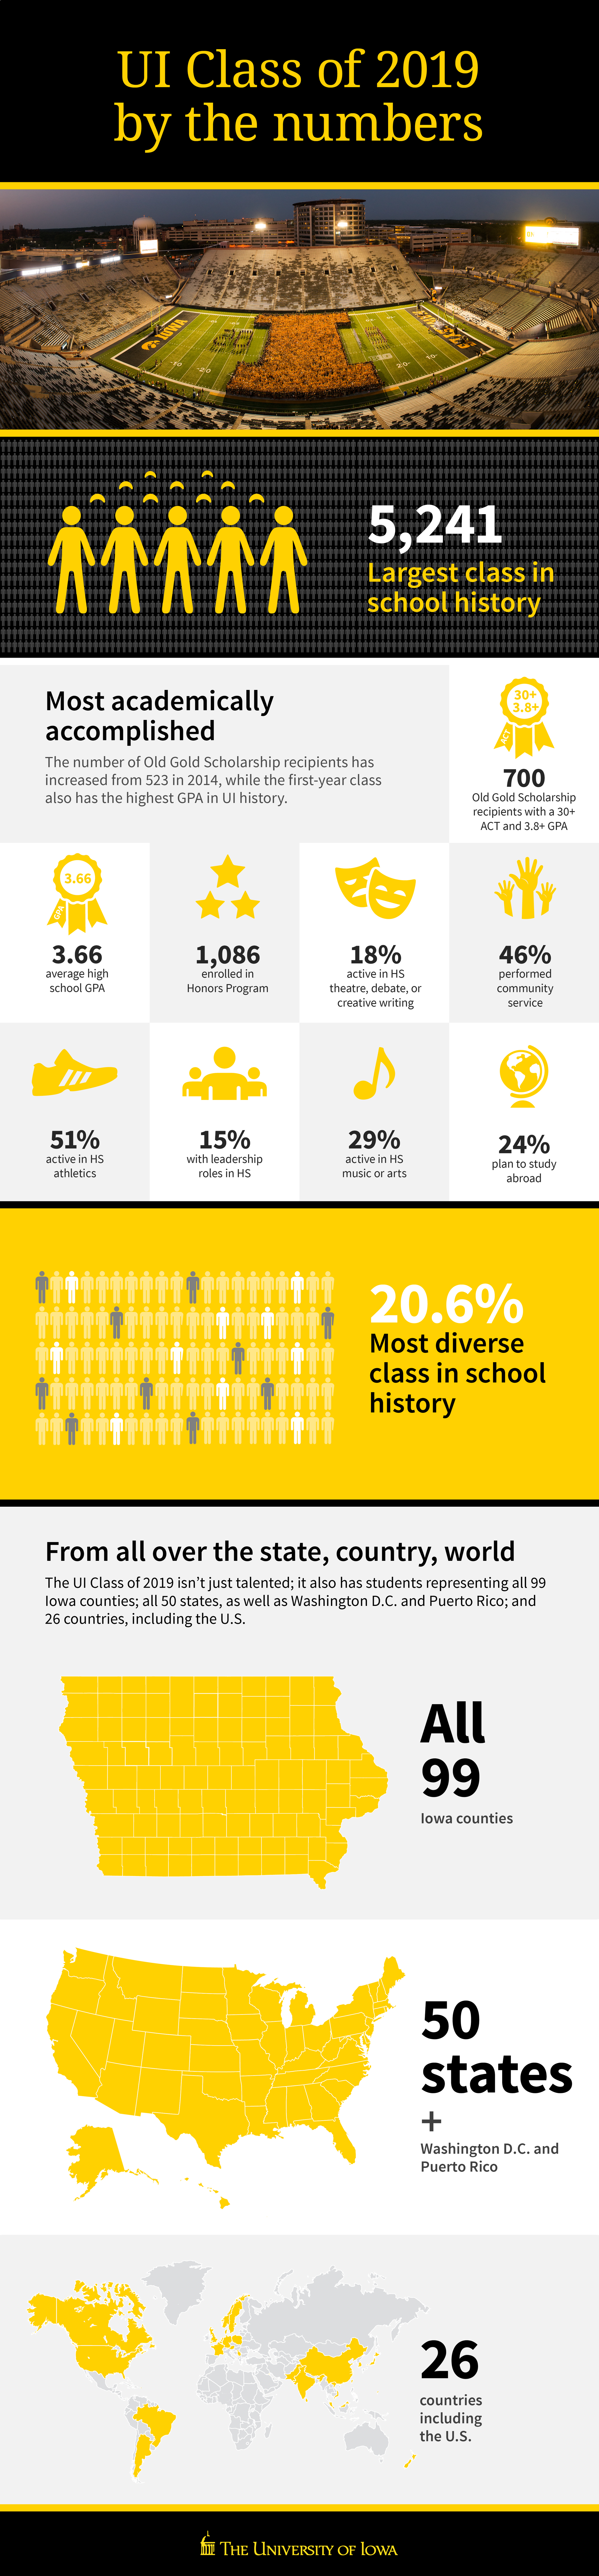 Class of 2019 infographic